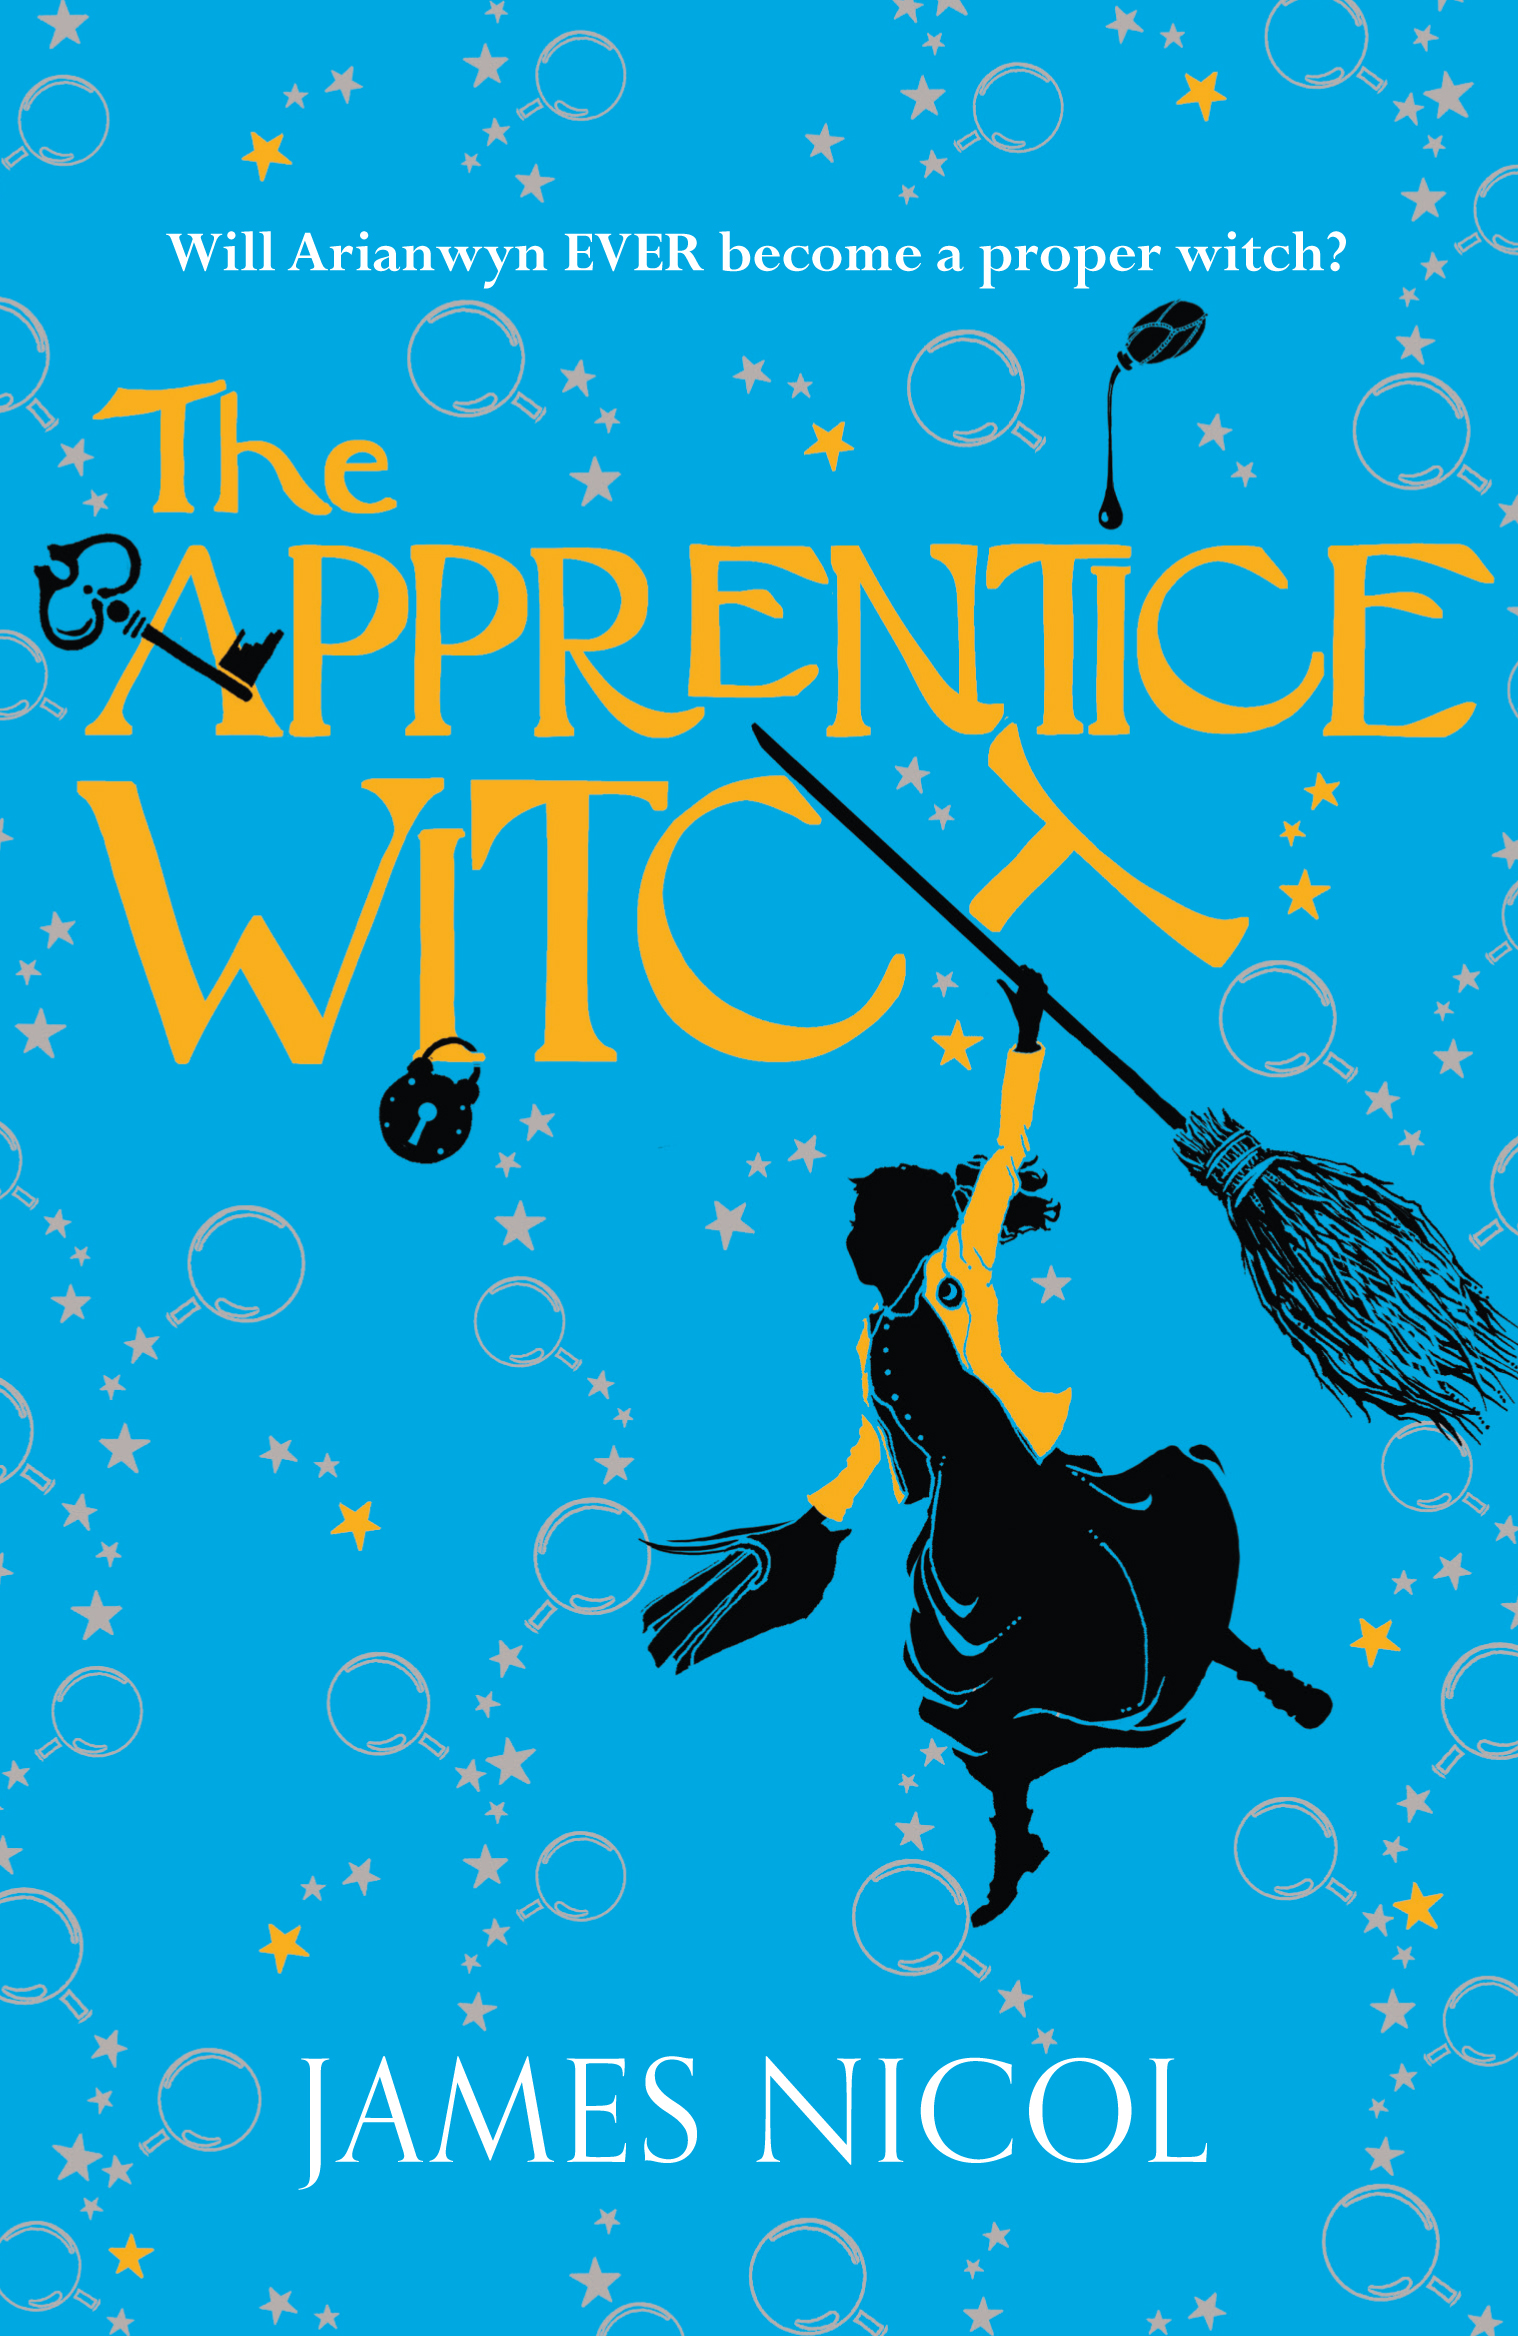 Chicken House Books Apprentice Witch